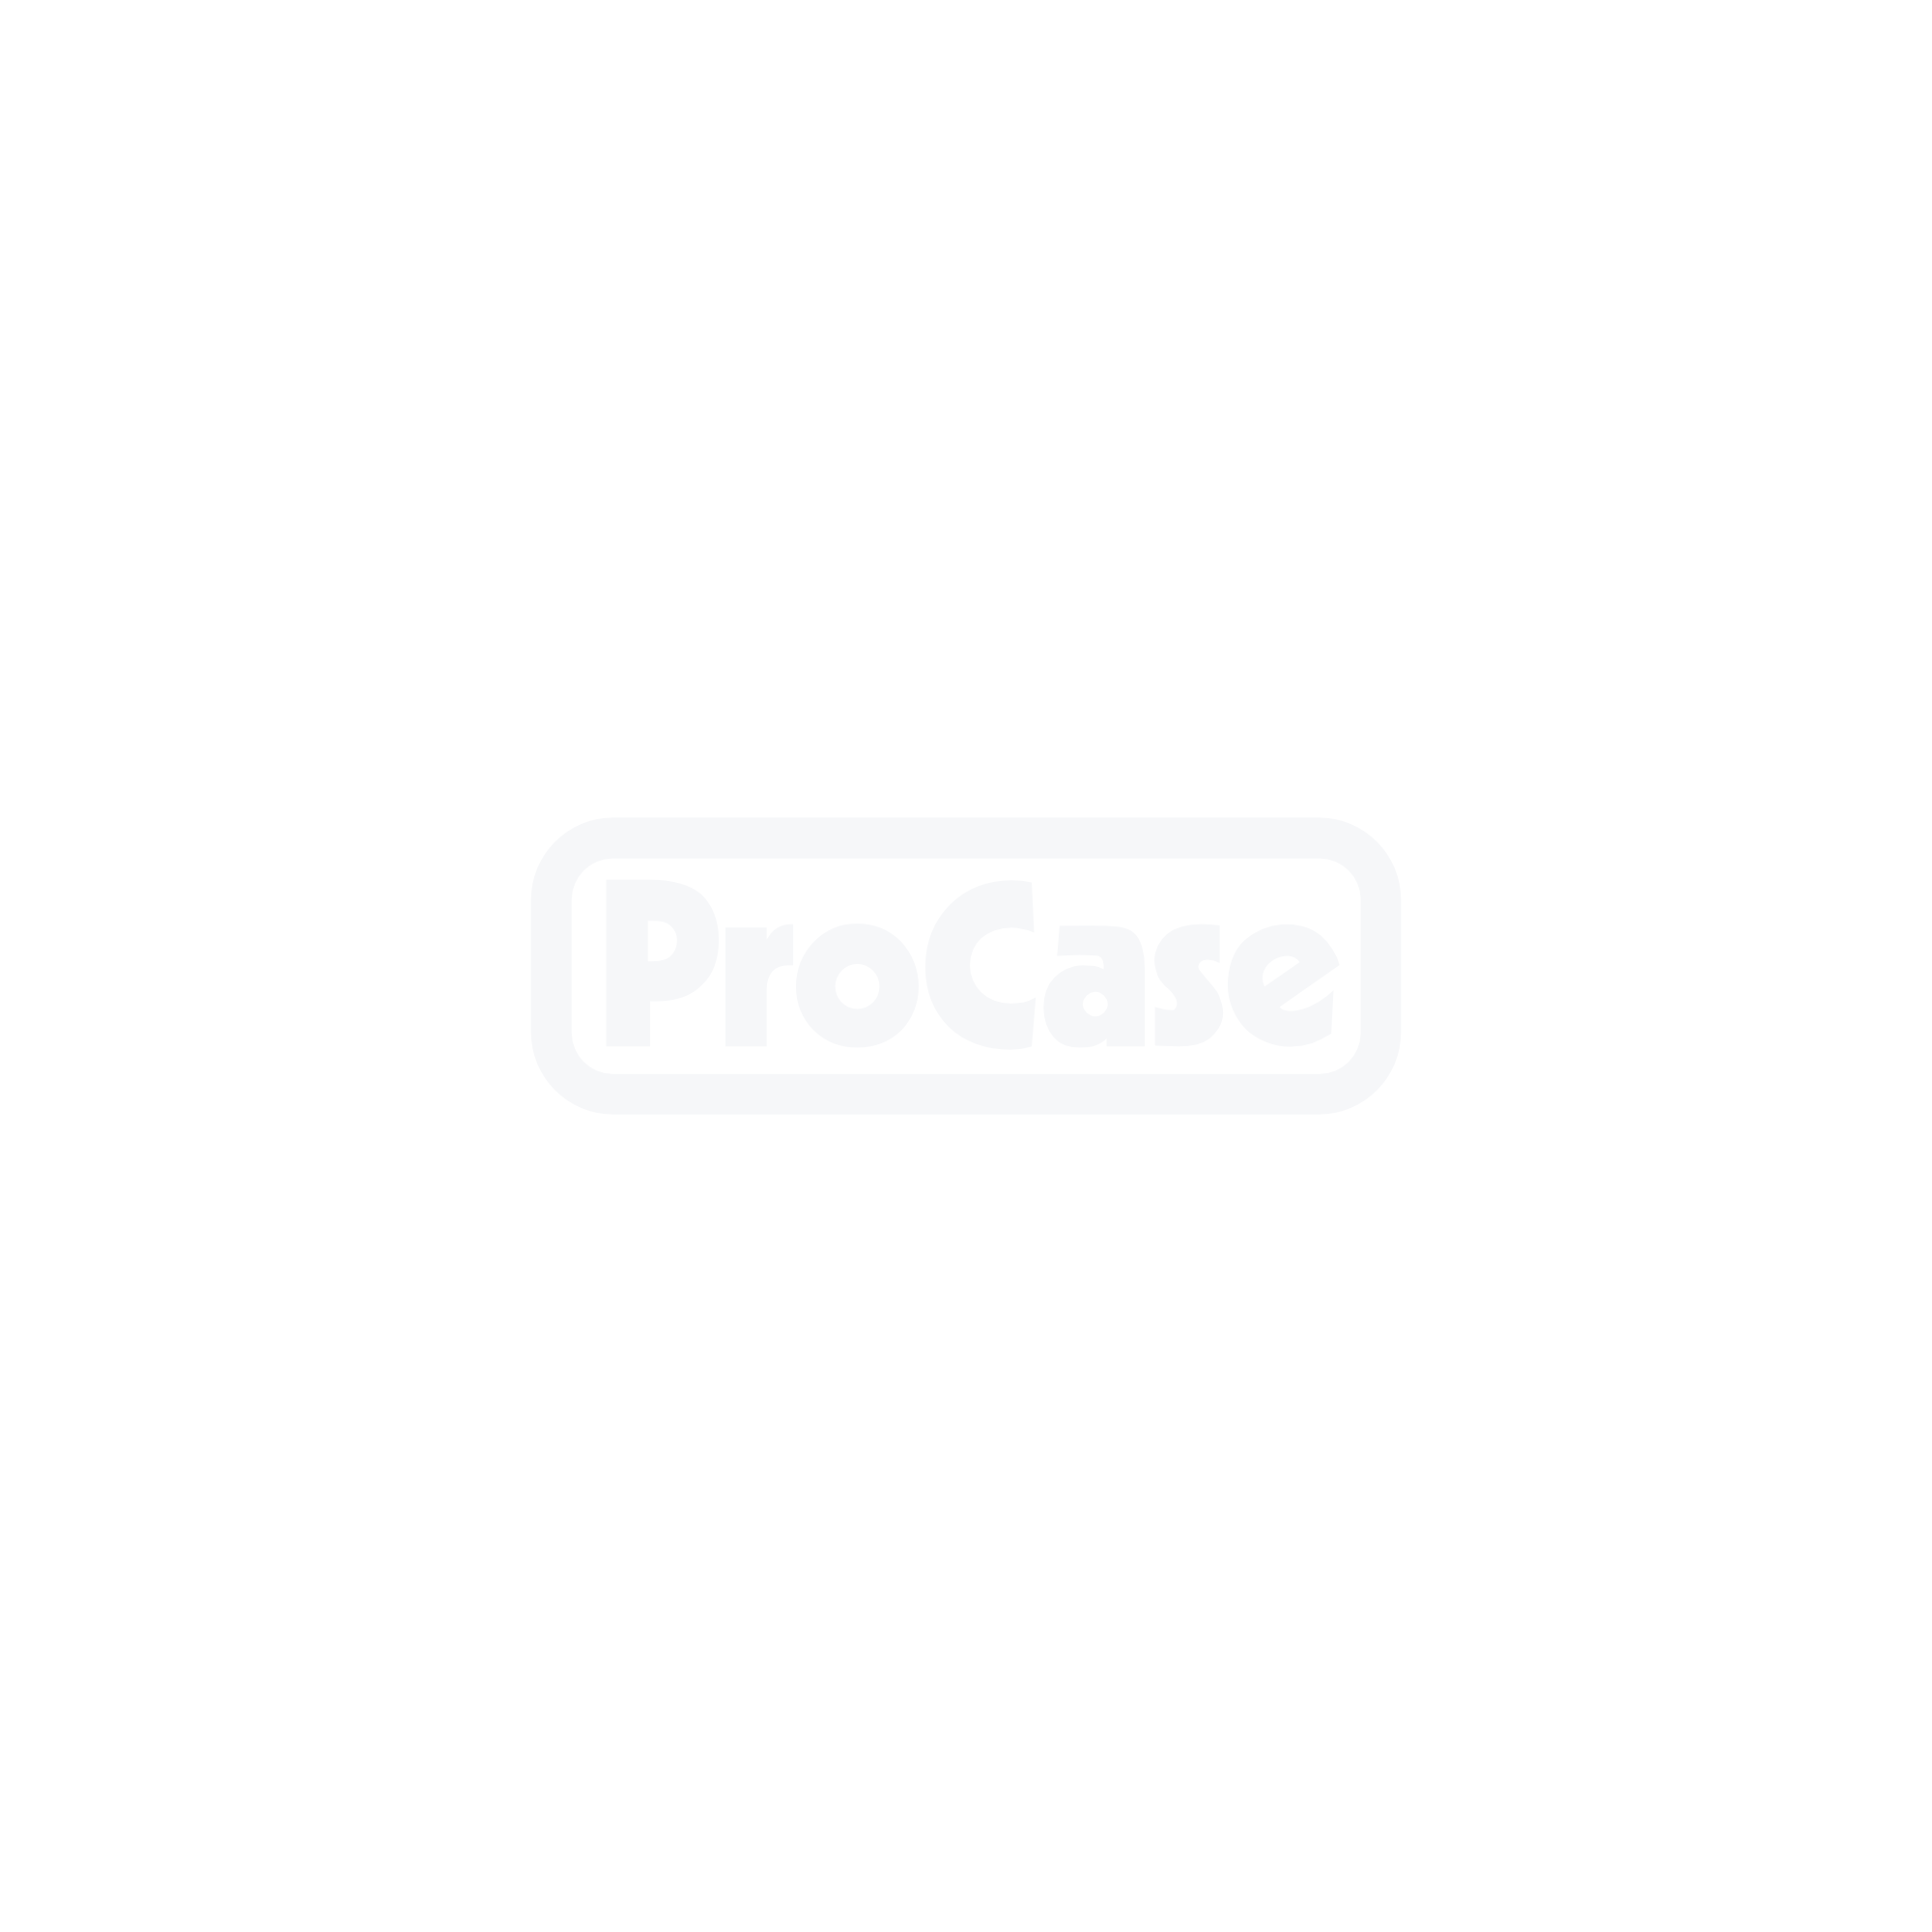 Traversen Transportwagen für Eurotruss Prolyte Milos Sweettruss